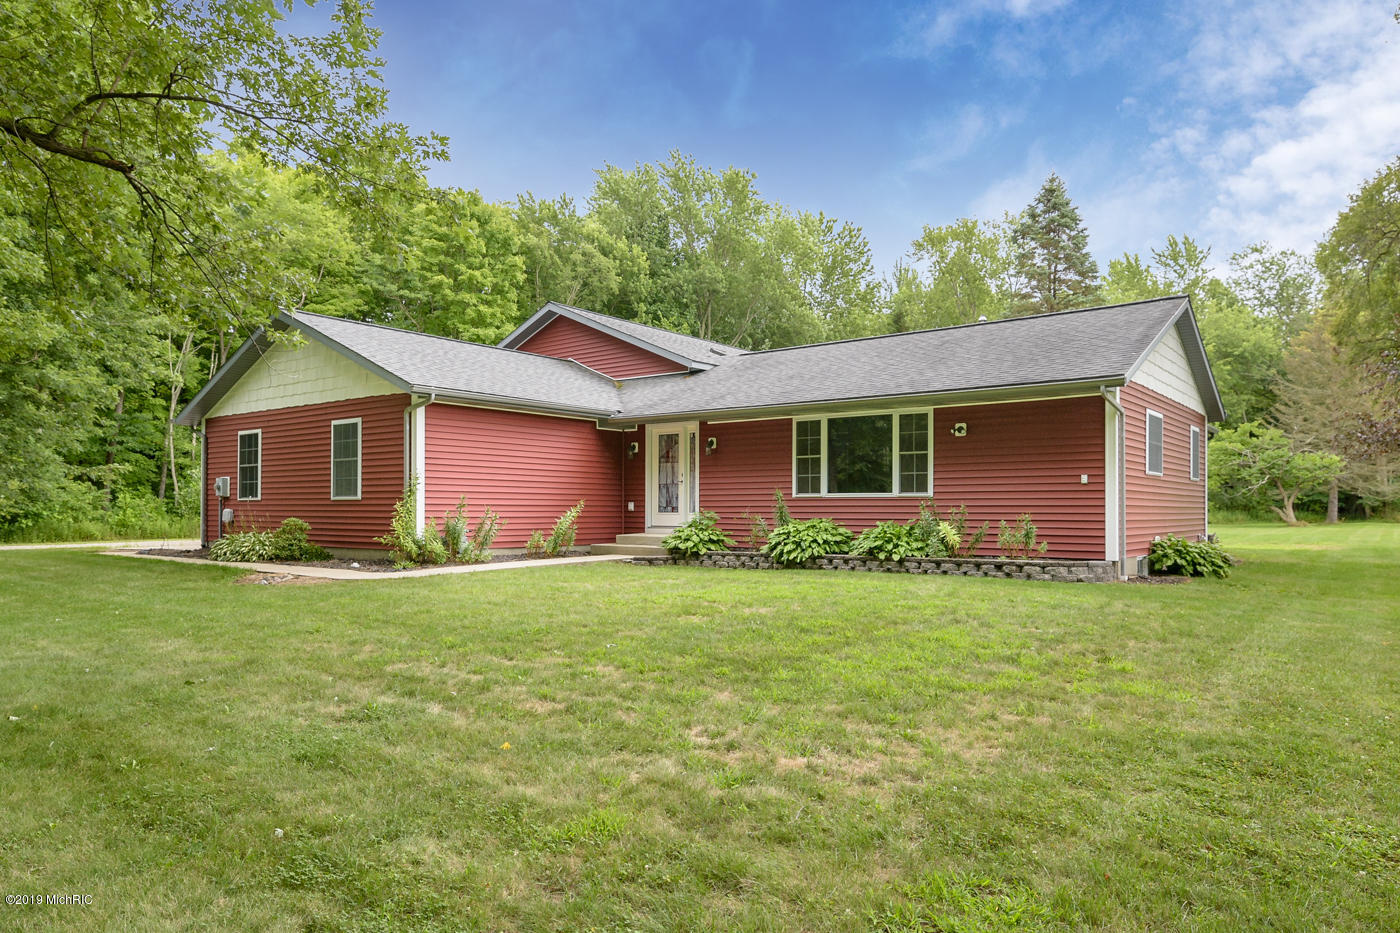 Photo for 72317 6th Avenue, South Haven, MI 49090 (MLS # 19037741)